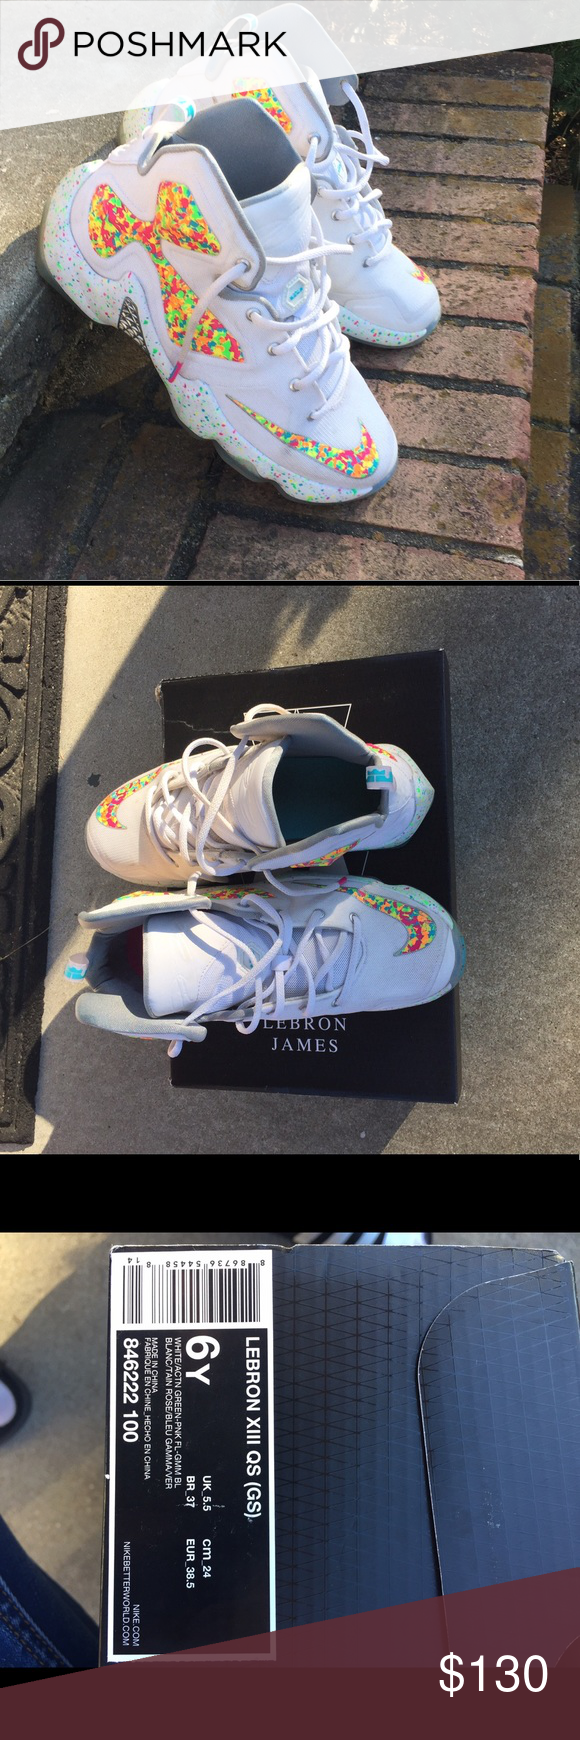 665321372882 Lebron 13 fruity pebbles size 6y Good preowned condition A few scuff marks  but other than that it s in great condition. 100% authentic comes with box  Nike ...